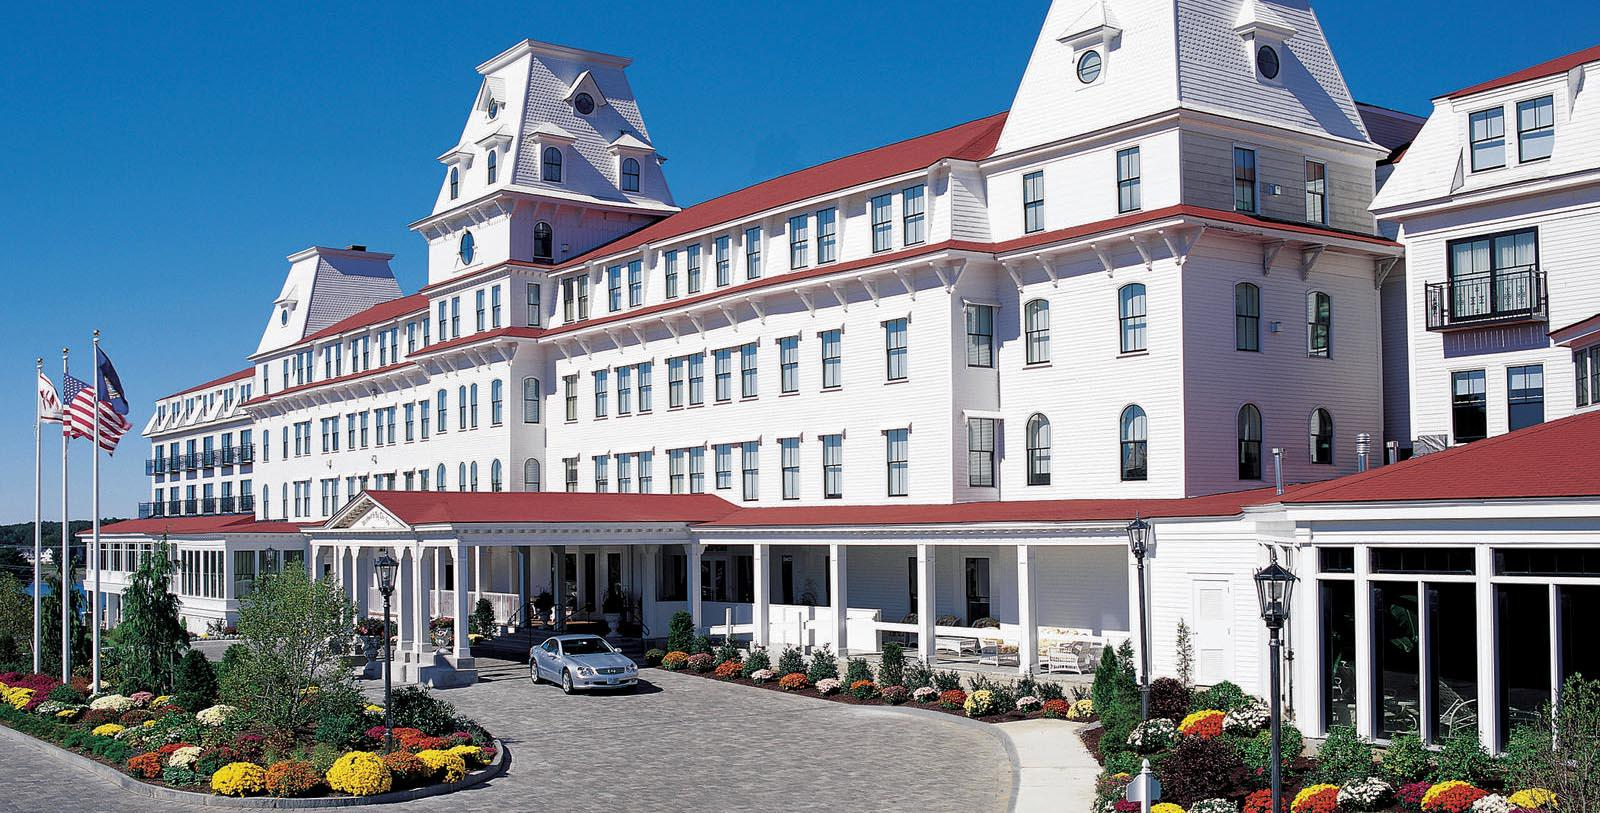 Image of Hotel Exterior, Wentworth by the Sea, New Castle, New Hampshire, 1874, Member of Historic Hotels of America, Special Offers, Discounted Rates, Families, Romantic Escape, Honeymoons, Anniversaries, Reunions